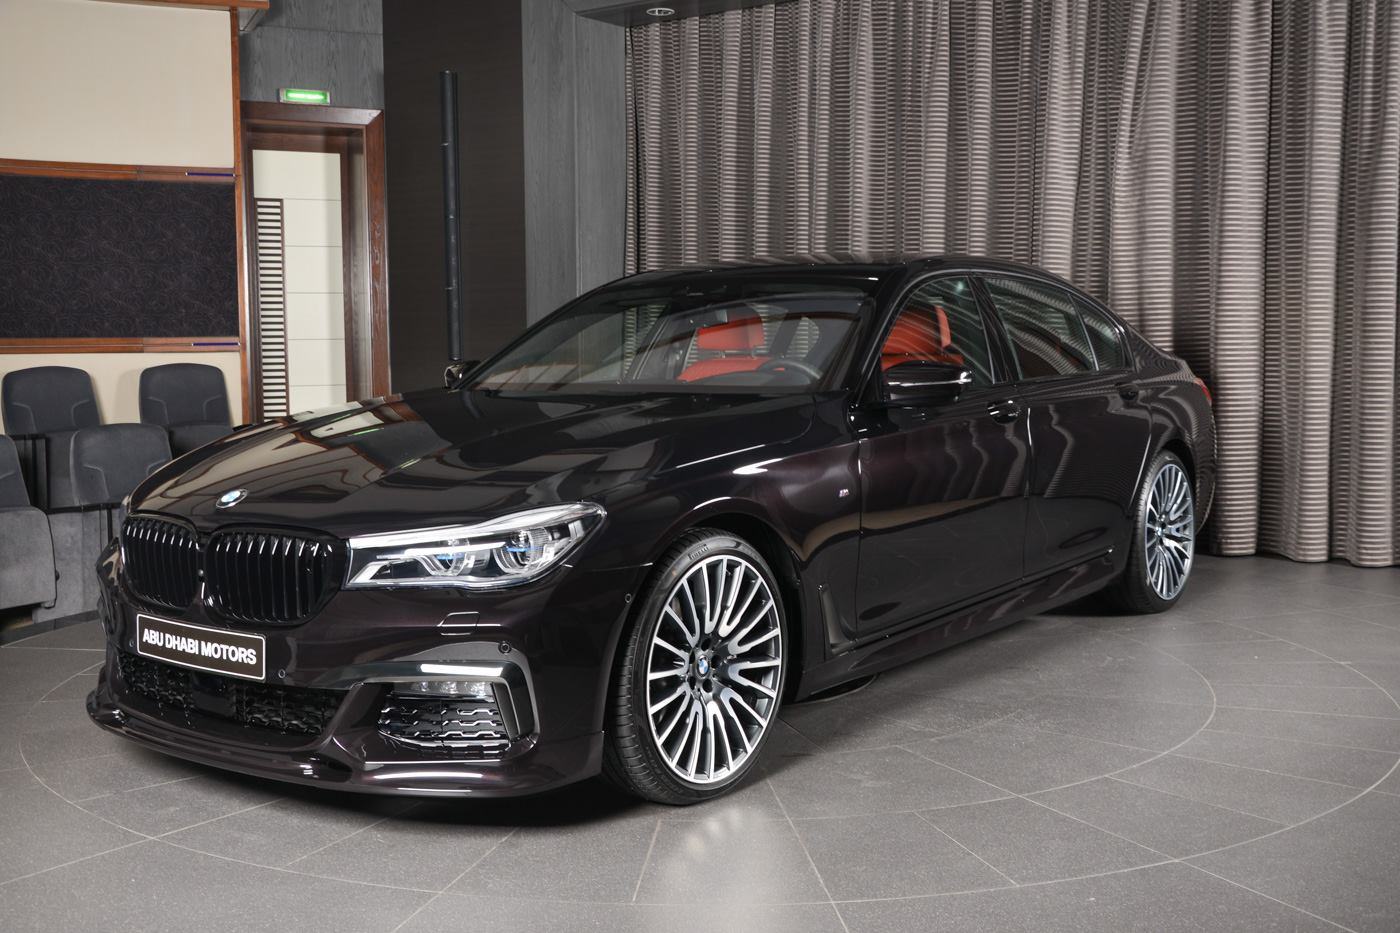 BMW Abu Dhabi Motors, the U.A.E. subdivision of the Bavarian automotive brand, has announced the sales of a unique executive car based on the BMW 7 Series